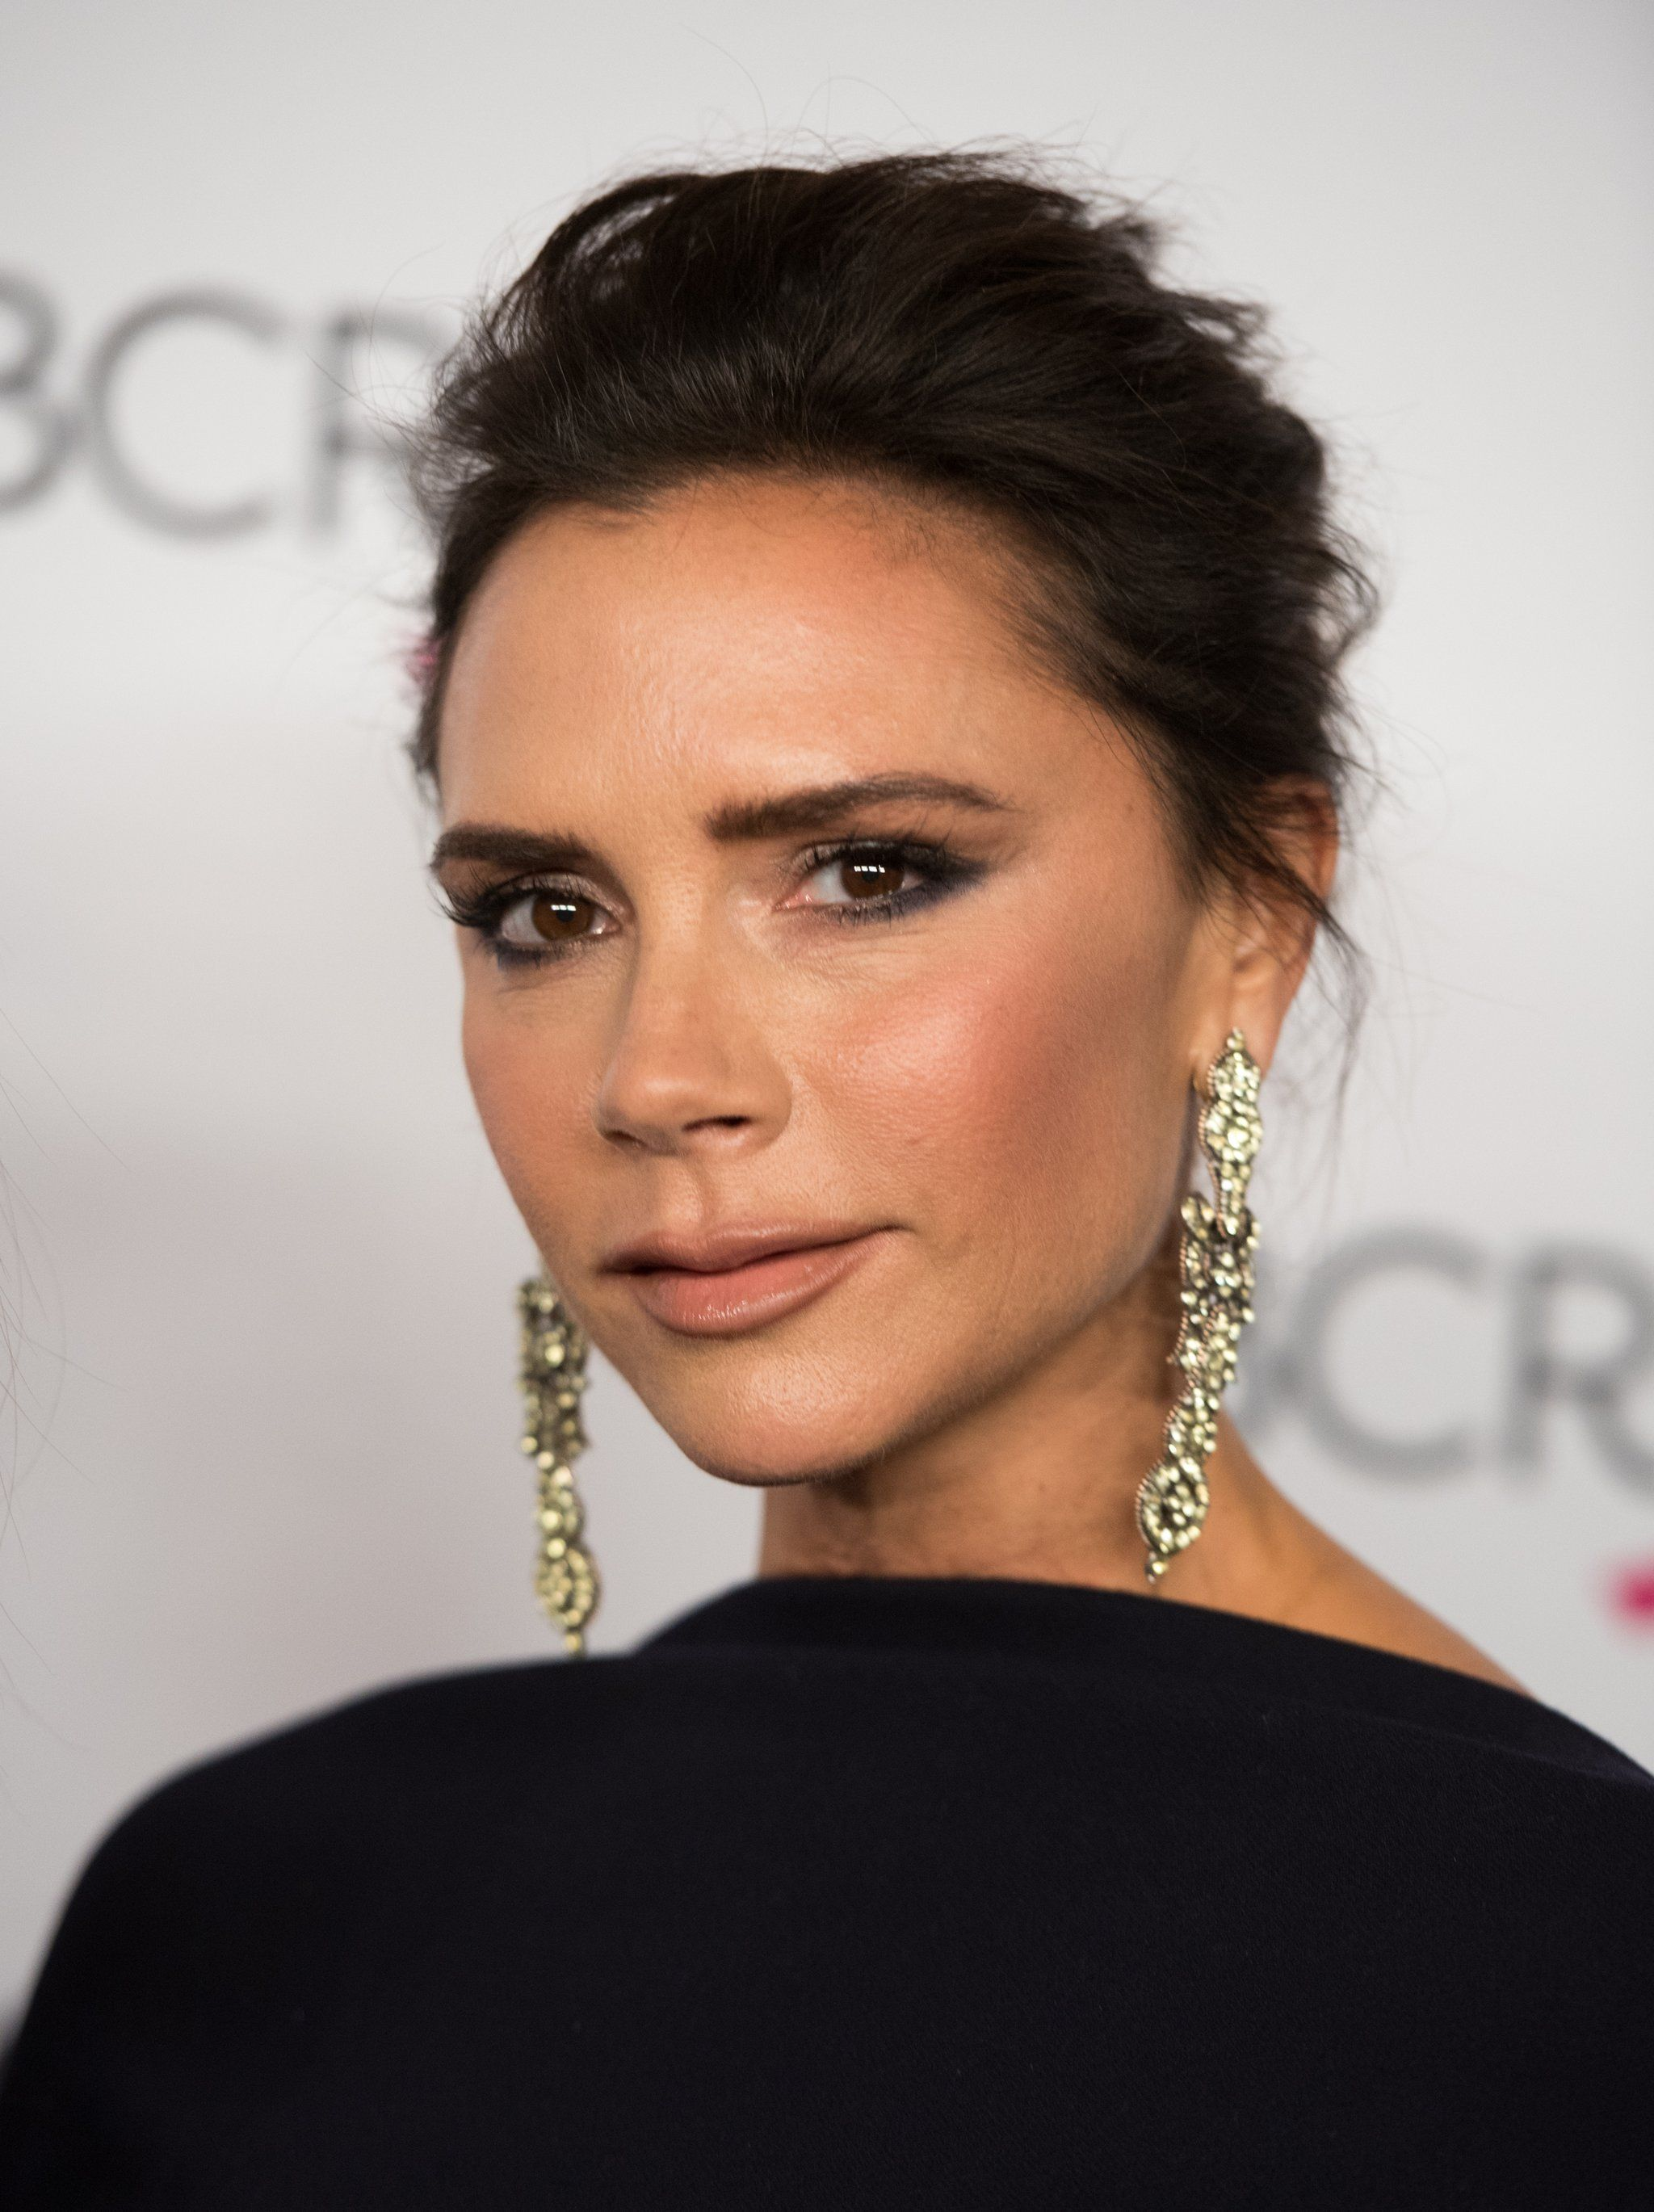 The One '90s Product Victoria Beckham Was ObsessedWith